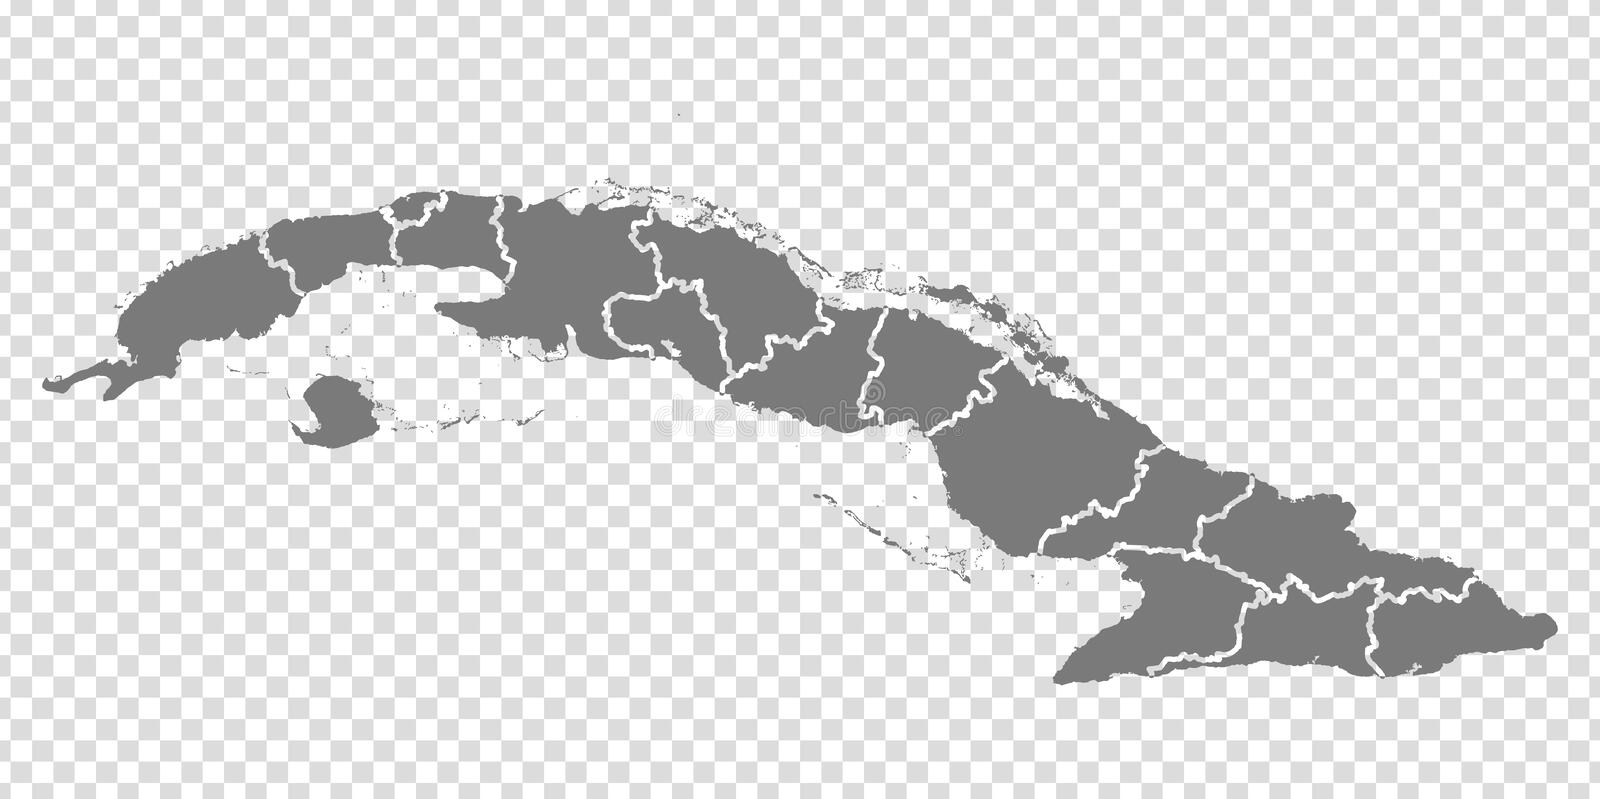 Blank map Republic of Cuba. High quality map of  Cuba with provinces on transparent background for your web site design, logo, app. UI.  America. EPS10 vector illustration